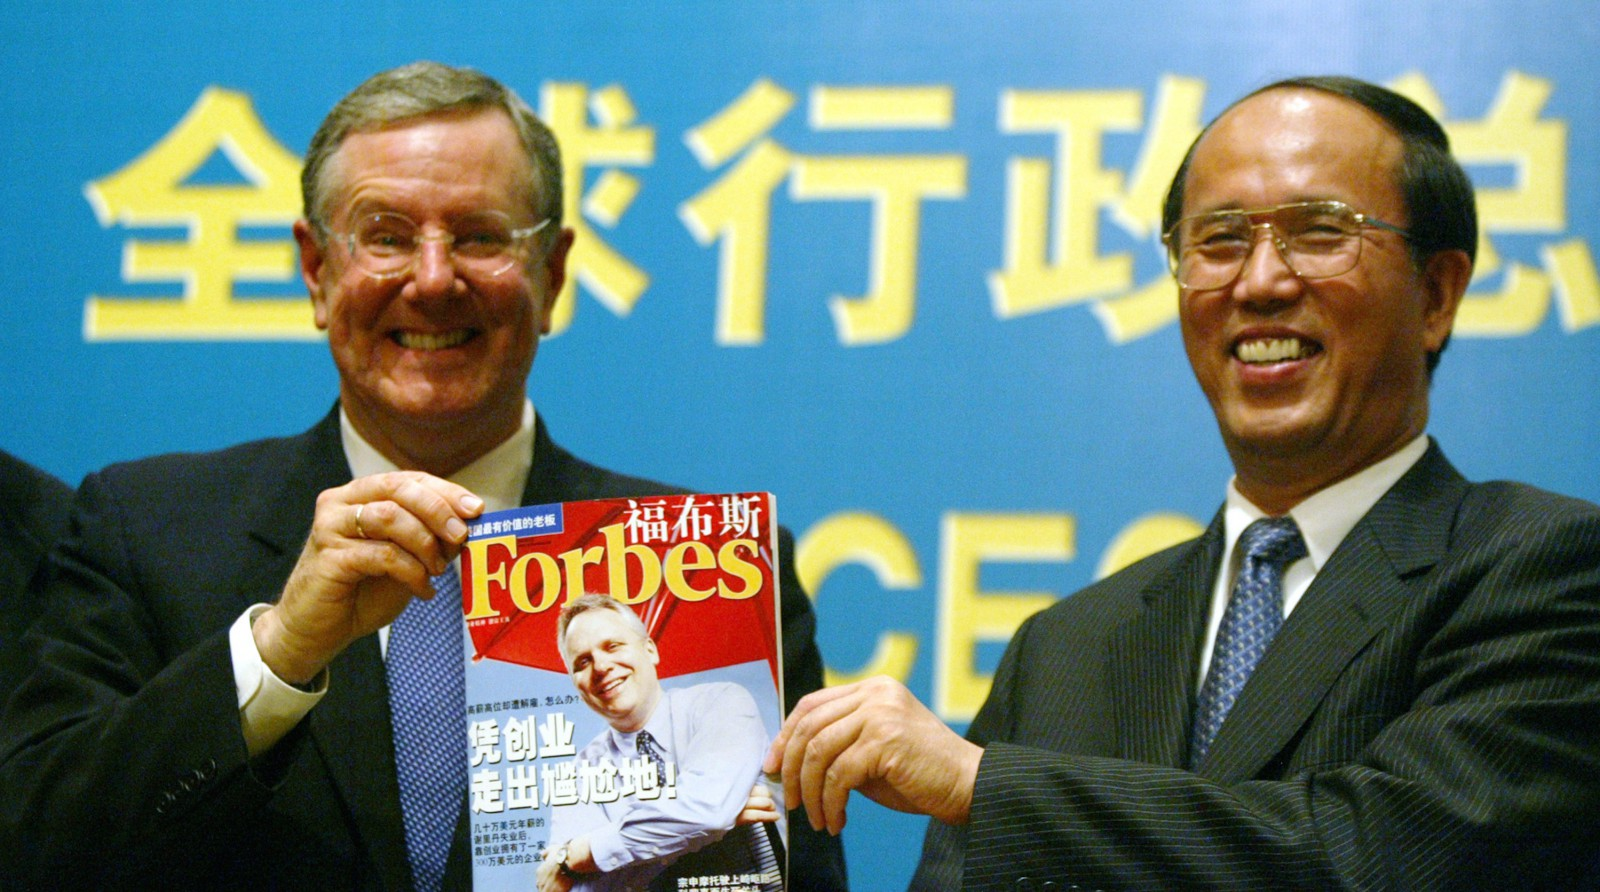 Steve Forbes and Shanghai vice-mayor Zhou Yupeng show a Chinese edition of Forbes Magazine in 2003.